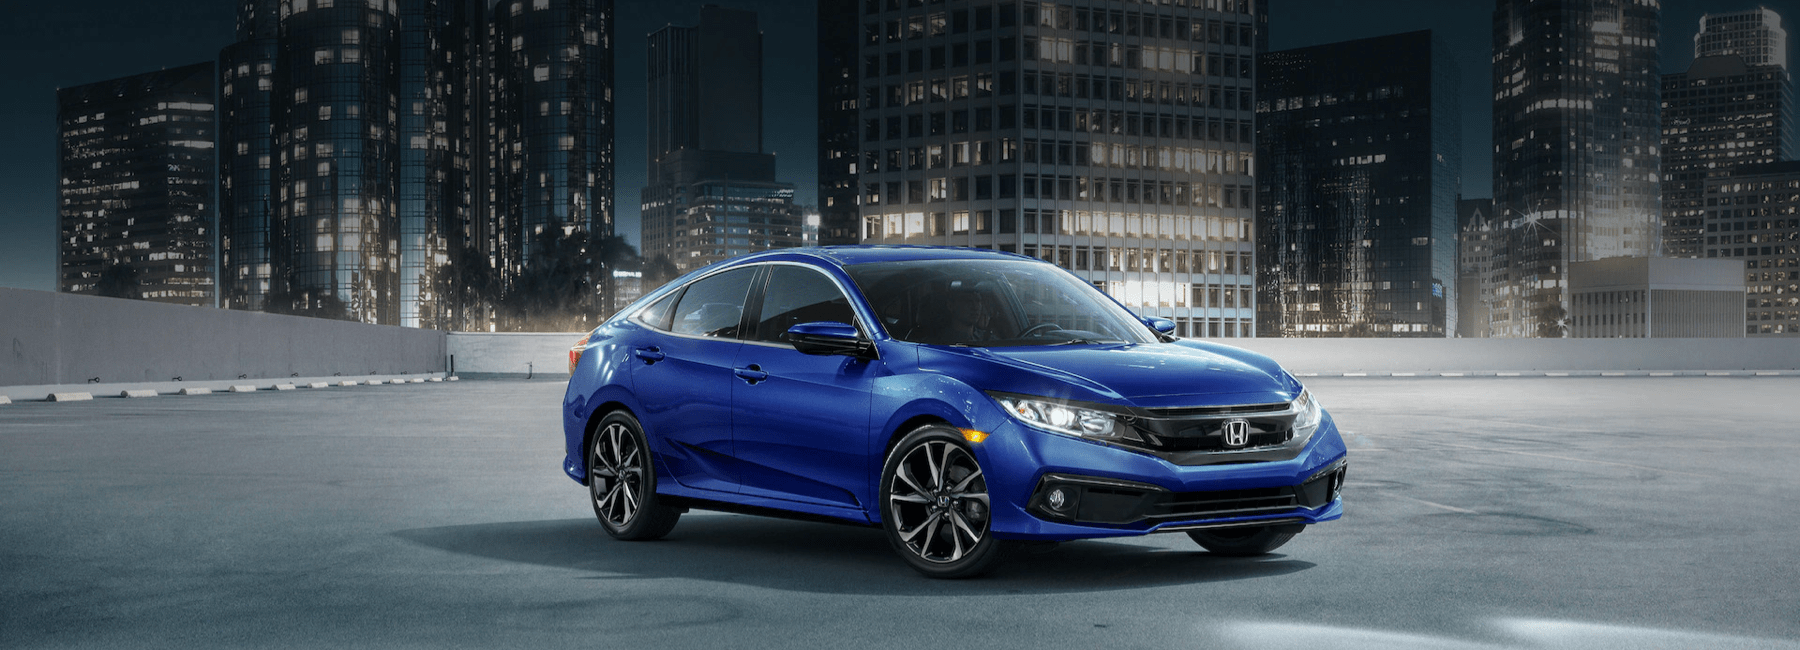 2021-Honda-Civic-Sedan-in-an-empty-parking-lot-in-front-of-an-urban-cityscape-at-night